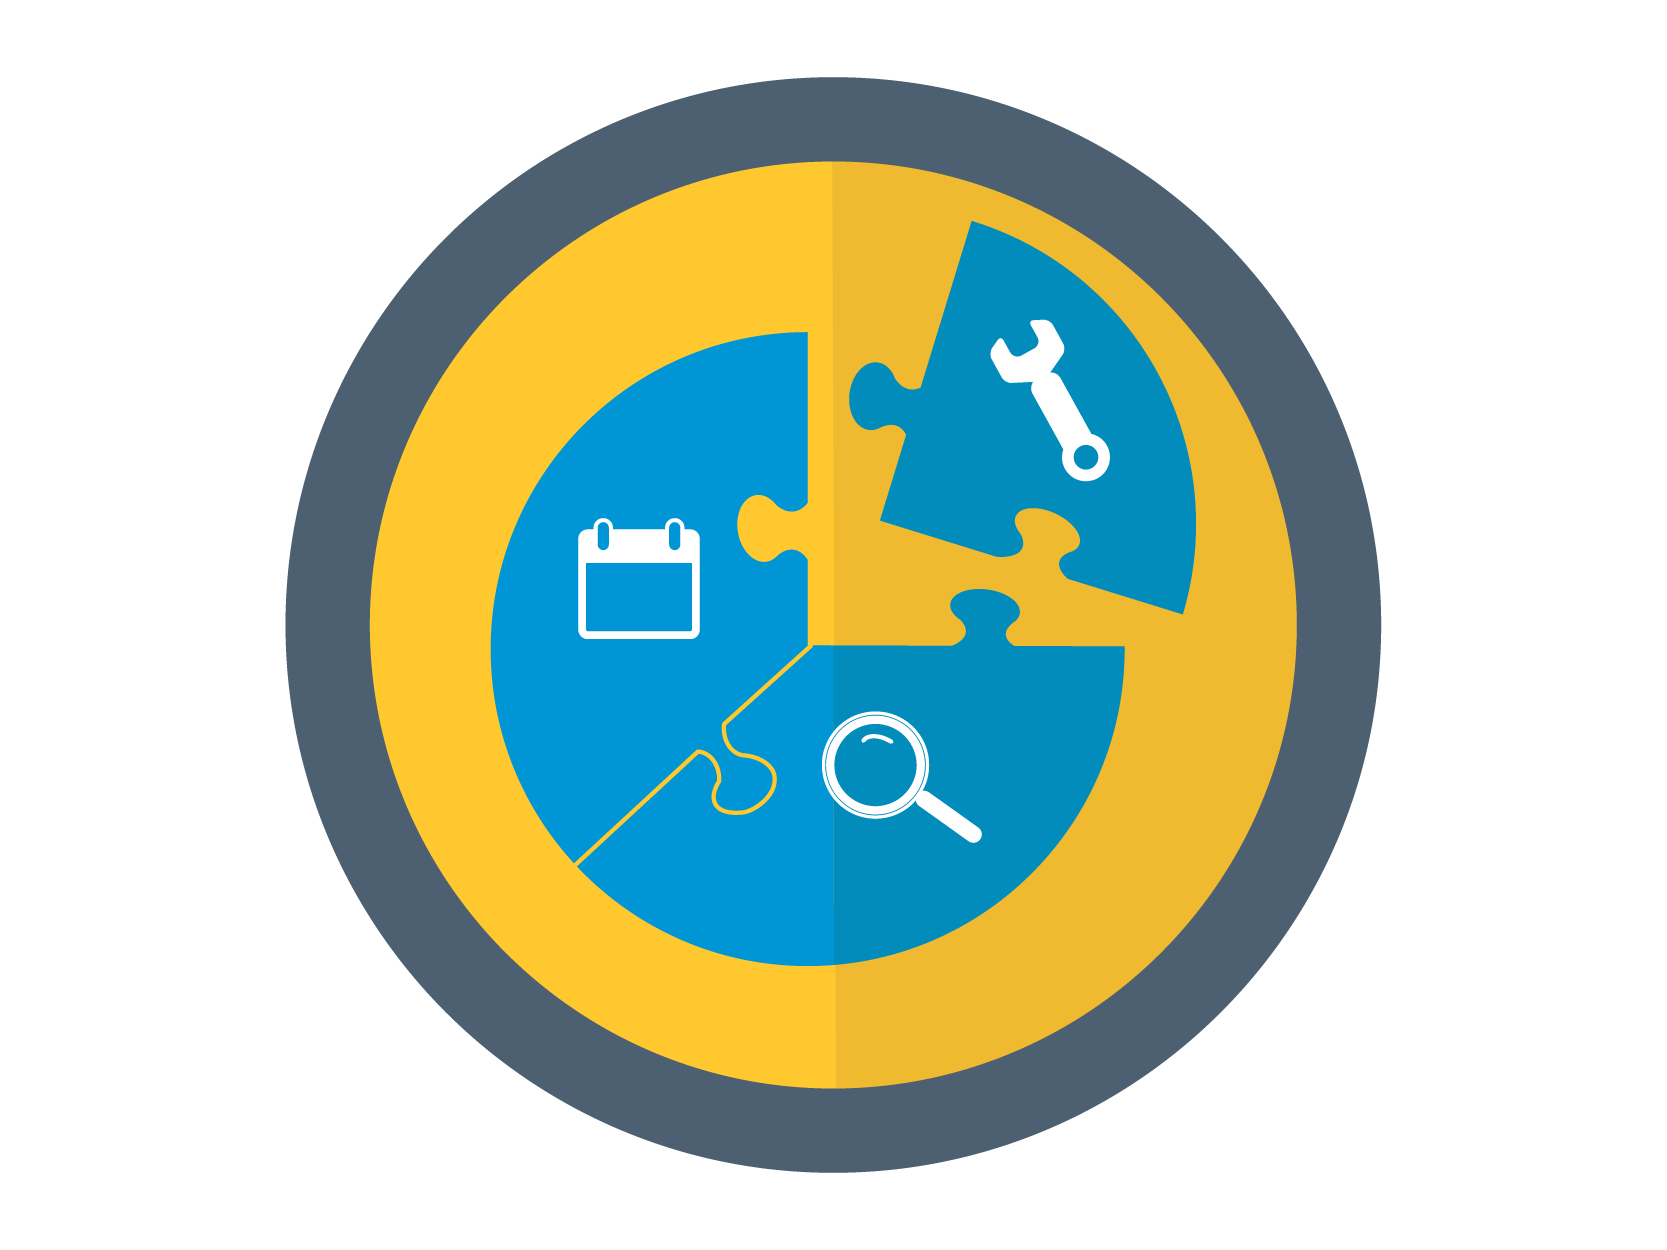 Efficiency and Effectiveness Initiative Icon: A circle with a set of puzzle pieces coming together